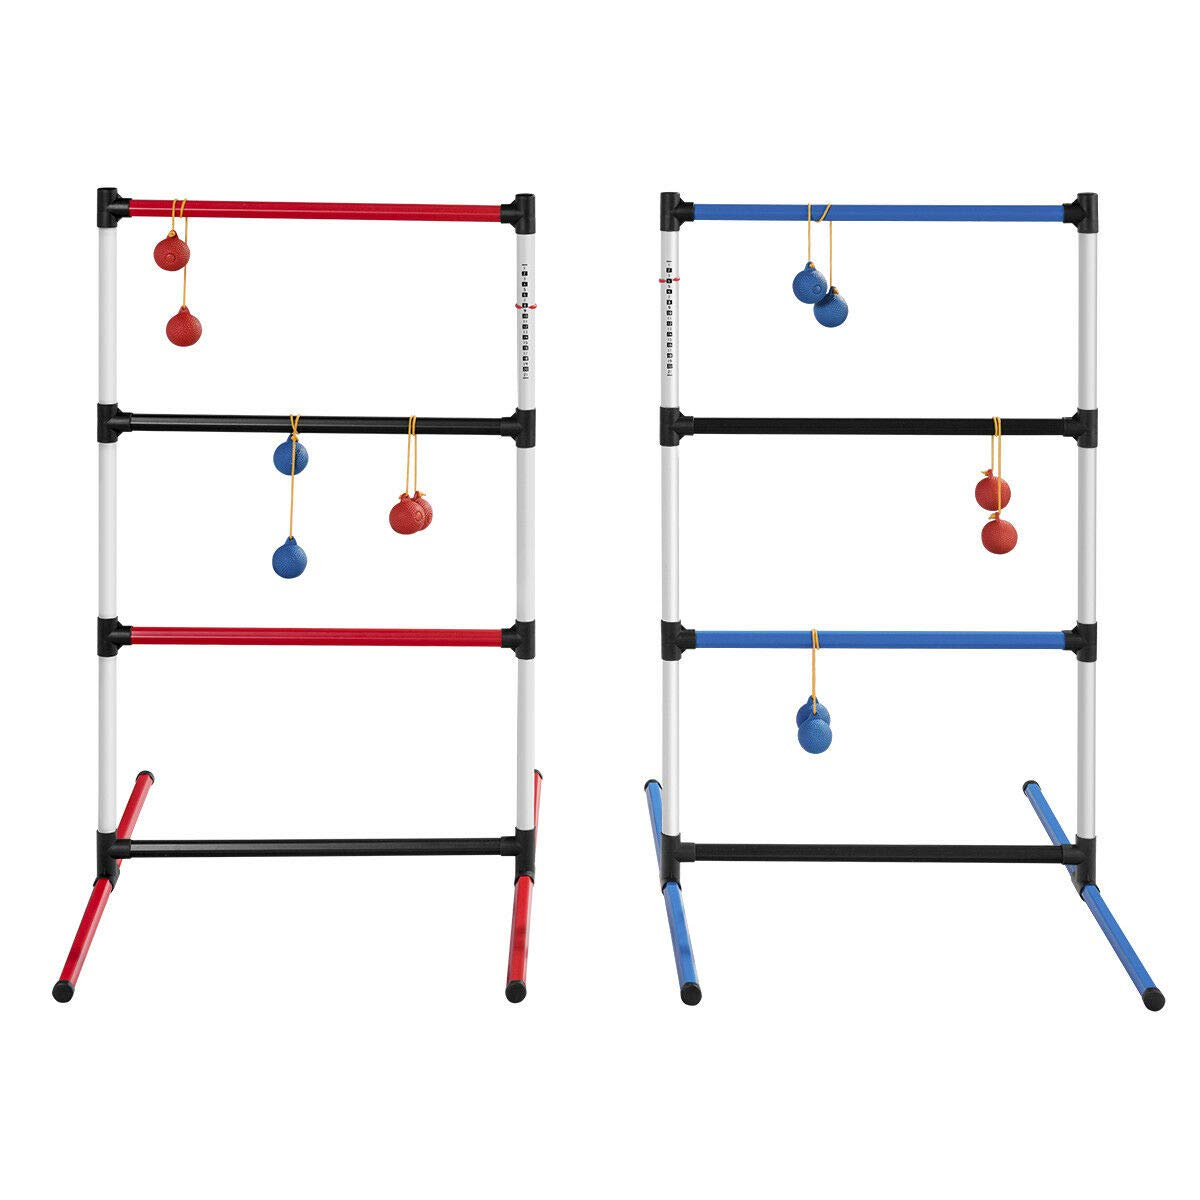 FDInspiration PVC Portable Family Sport Ladder Ball Toss Game w/Bag & 12 Balls with Ebook